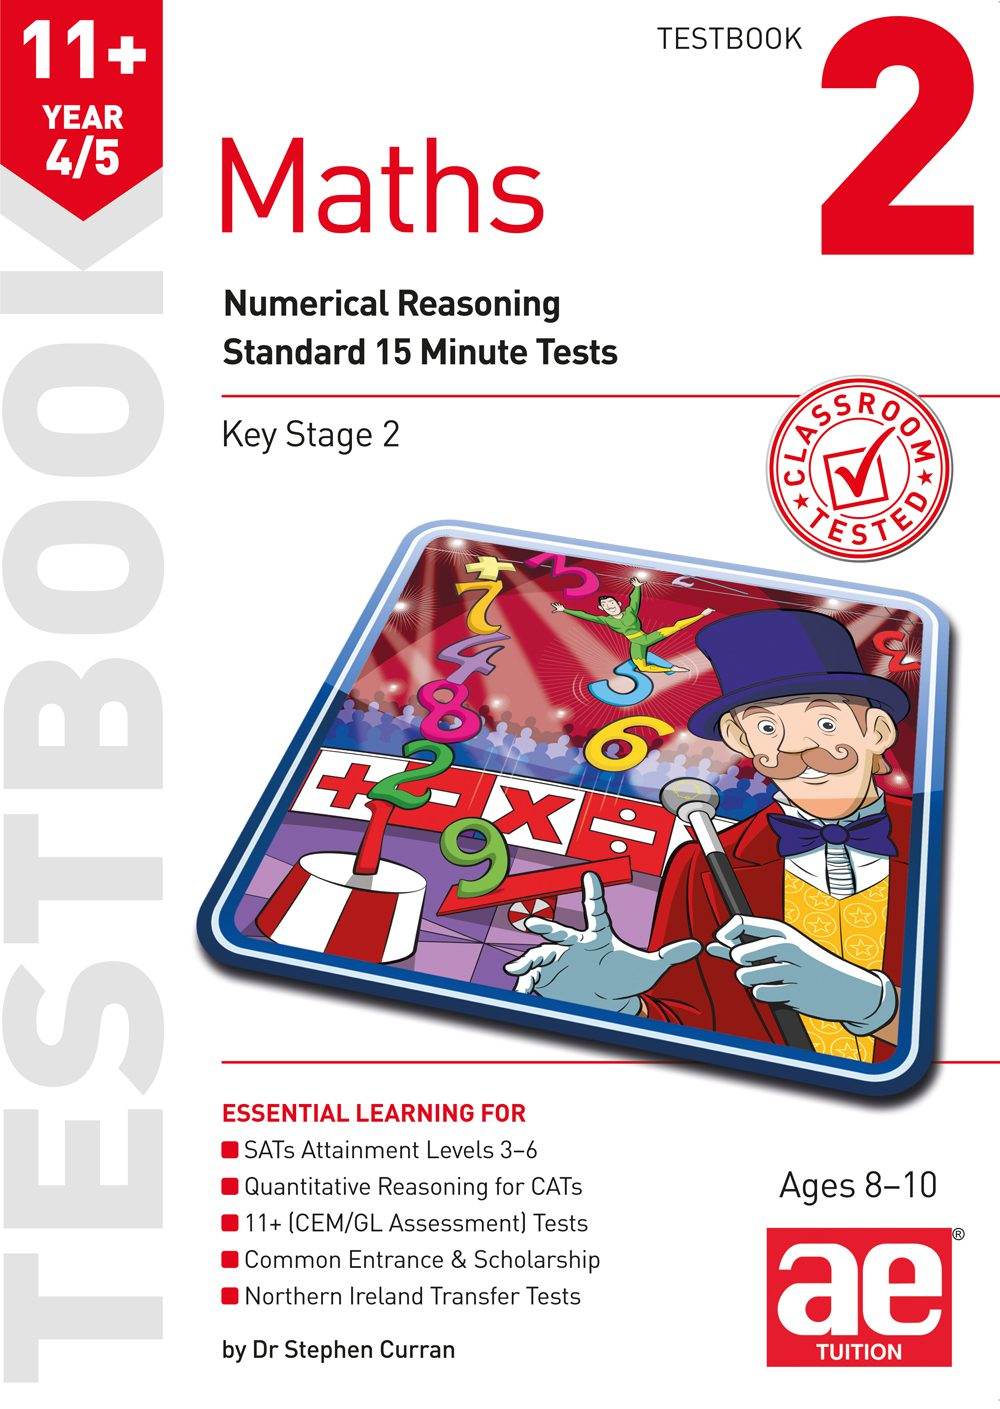 11-maths-year-4-5-testbook-2